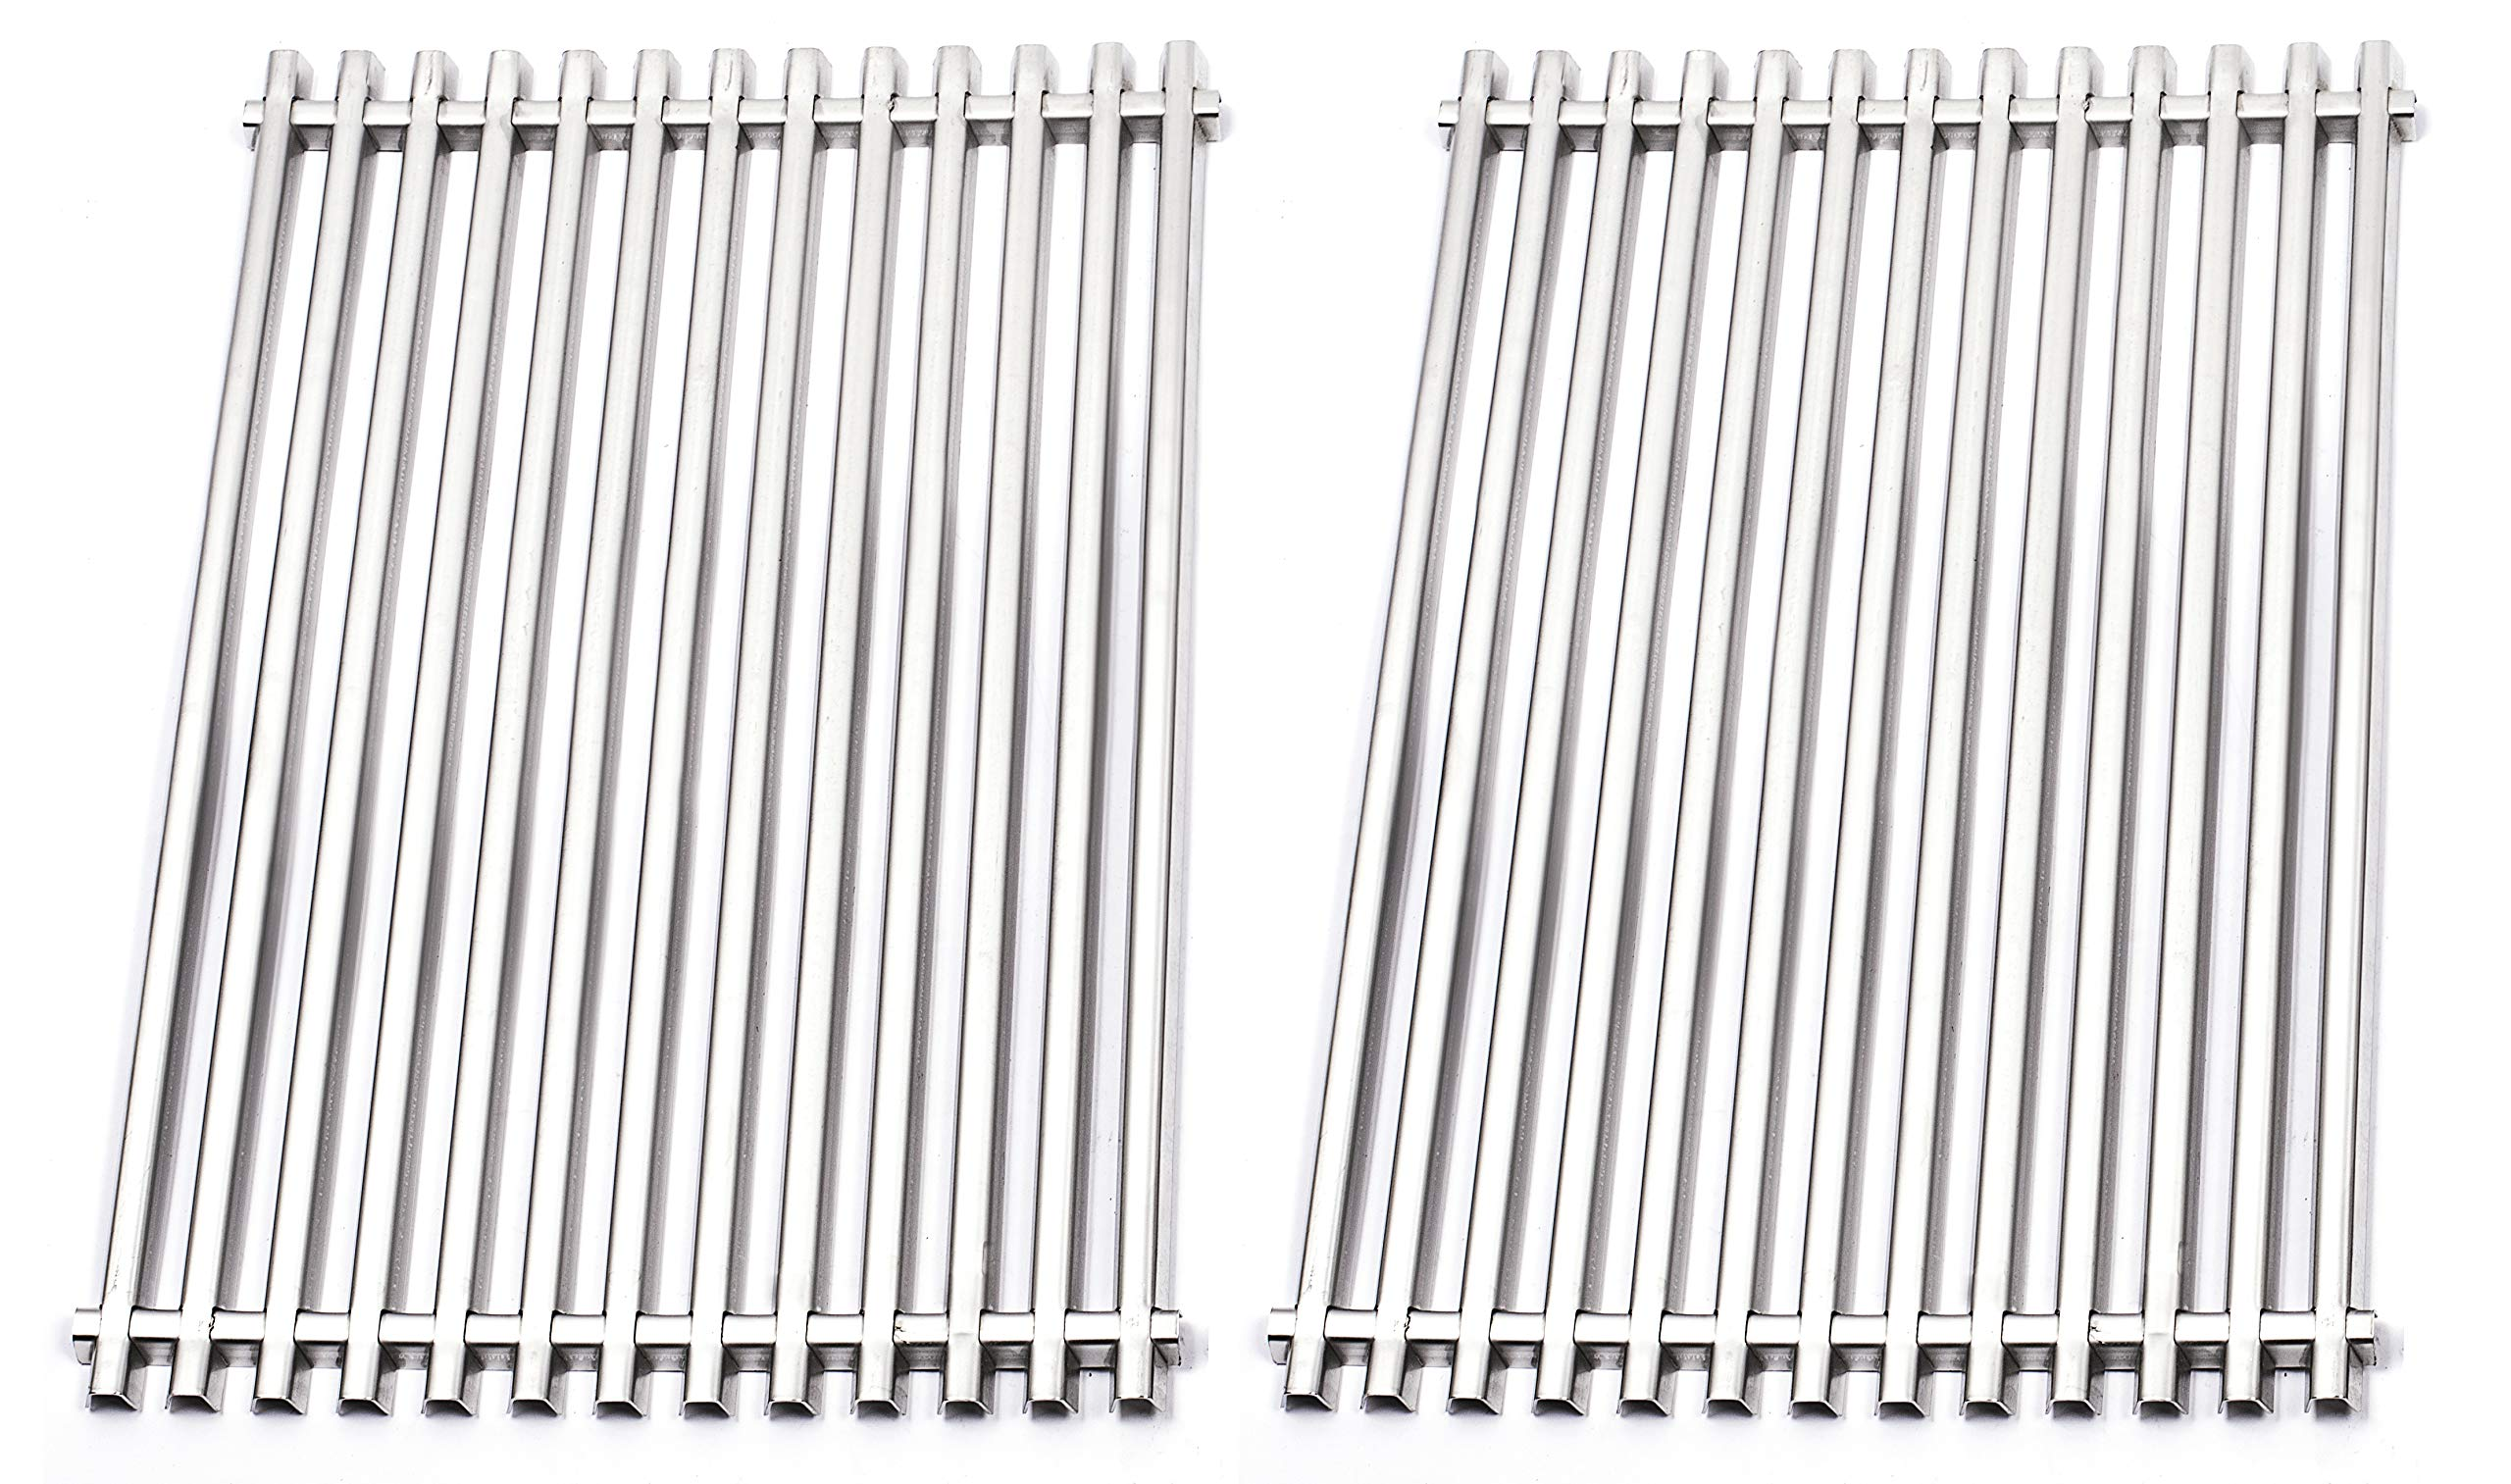 Broilmann BBQ Barbecue Replacement Stainless Steel Cooking Grates for Weber 7527, 9869 7526 7525 Spirit Genesis Grills, Lowes Model Grills by Broilmann